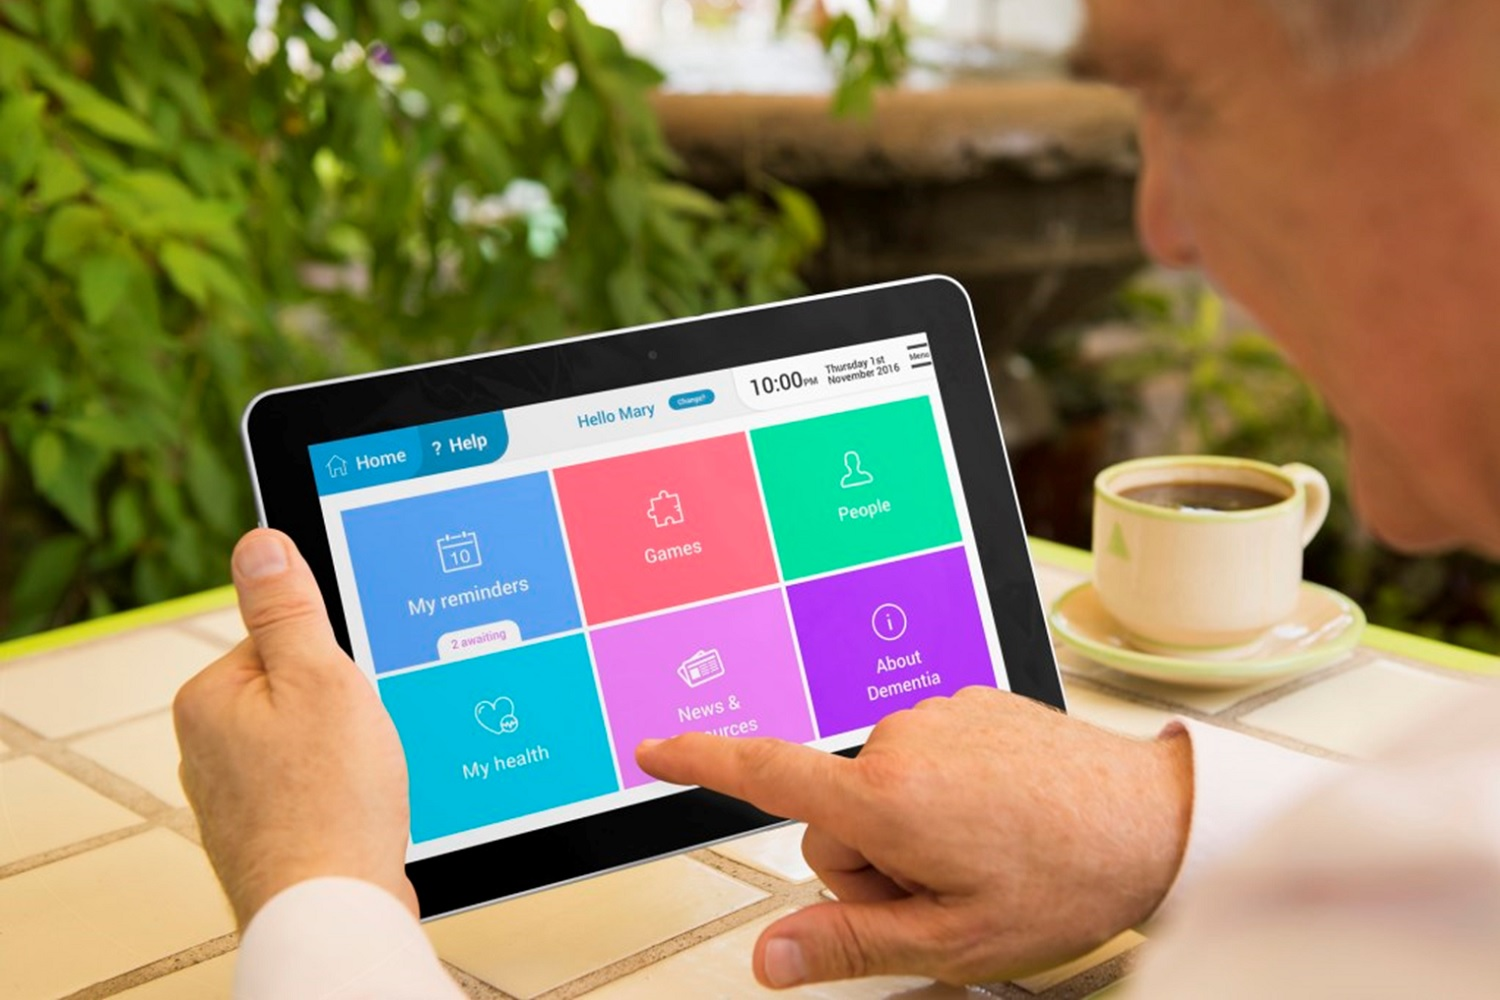 SMART4MD app will help people with mild dementia